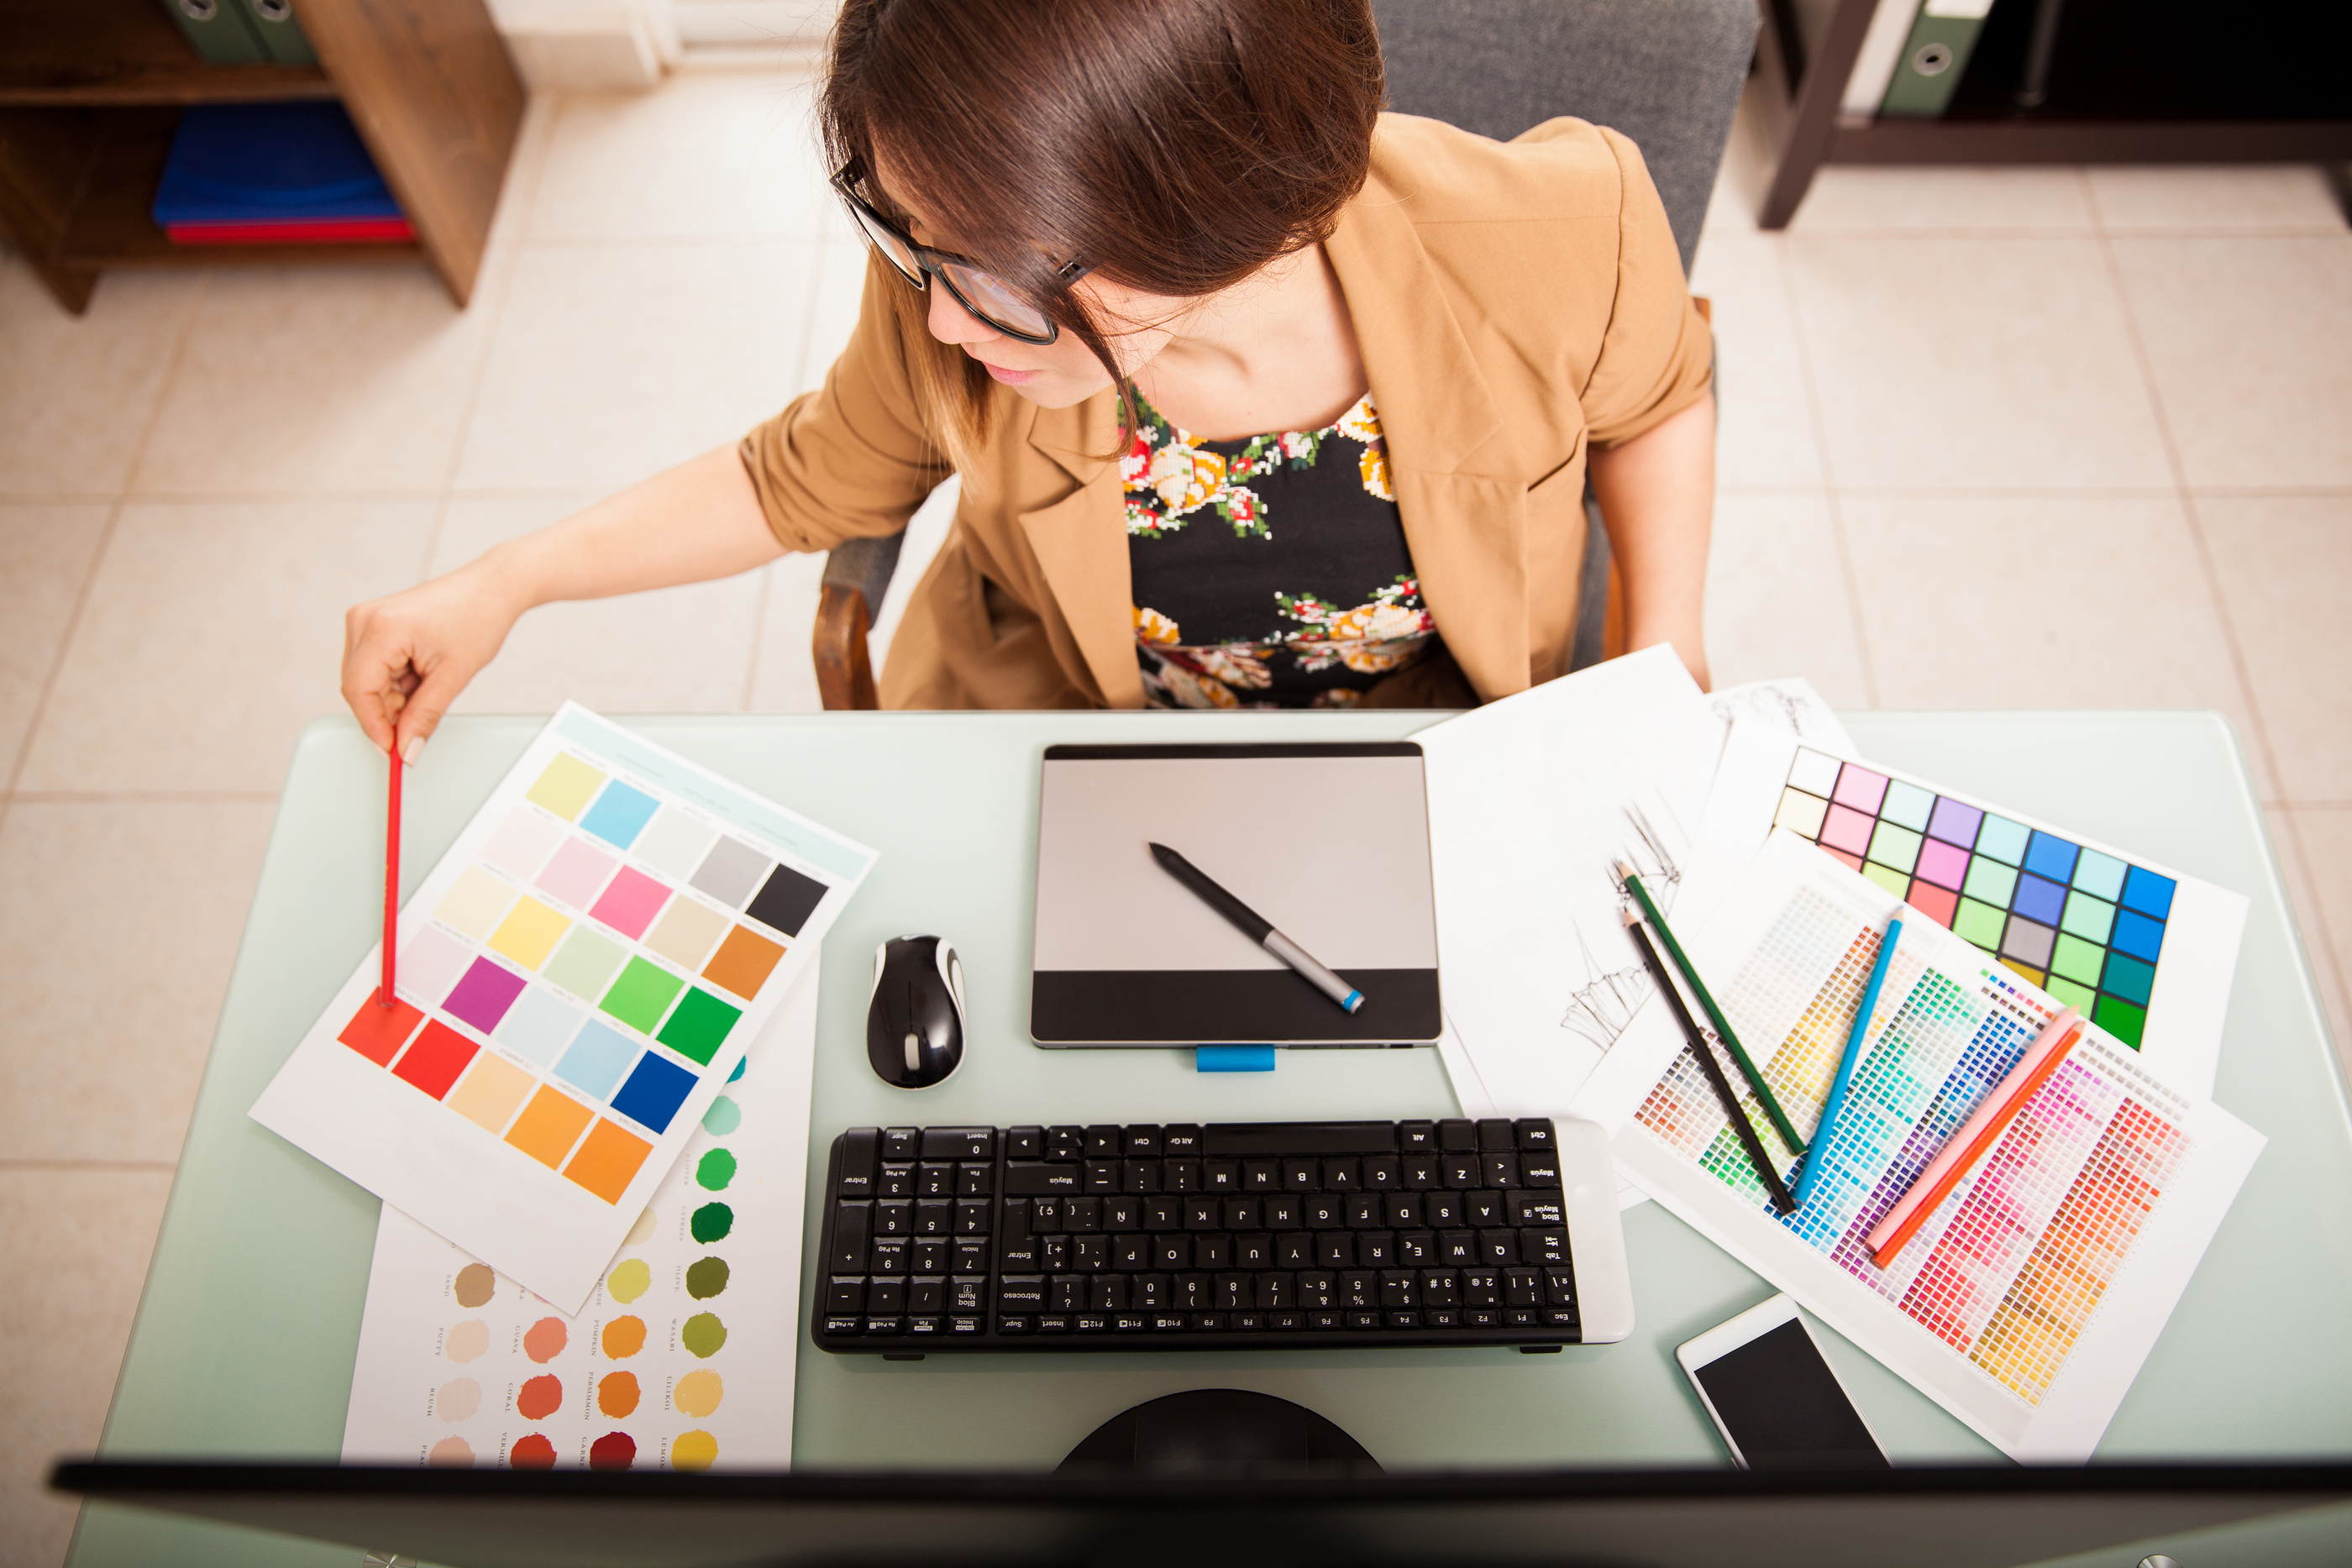 Important Tips to Design Professional Logos & Never Lose Clients Again!